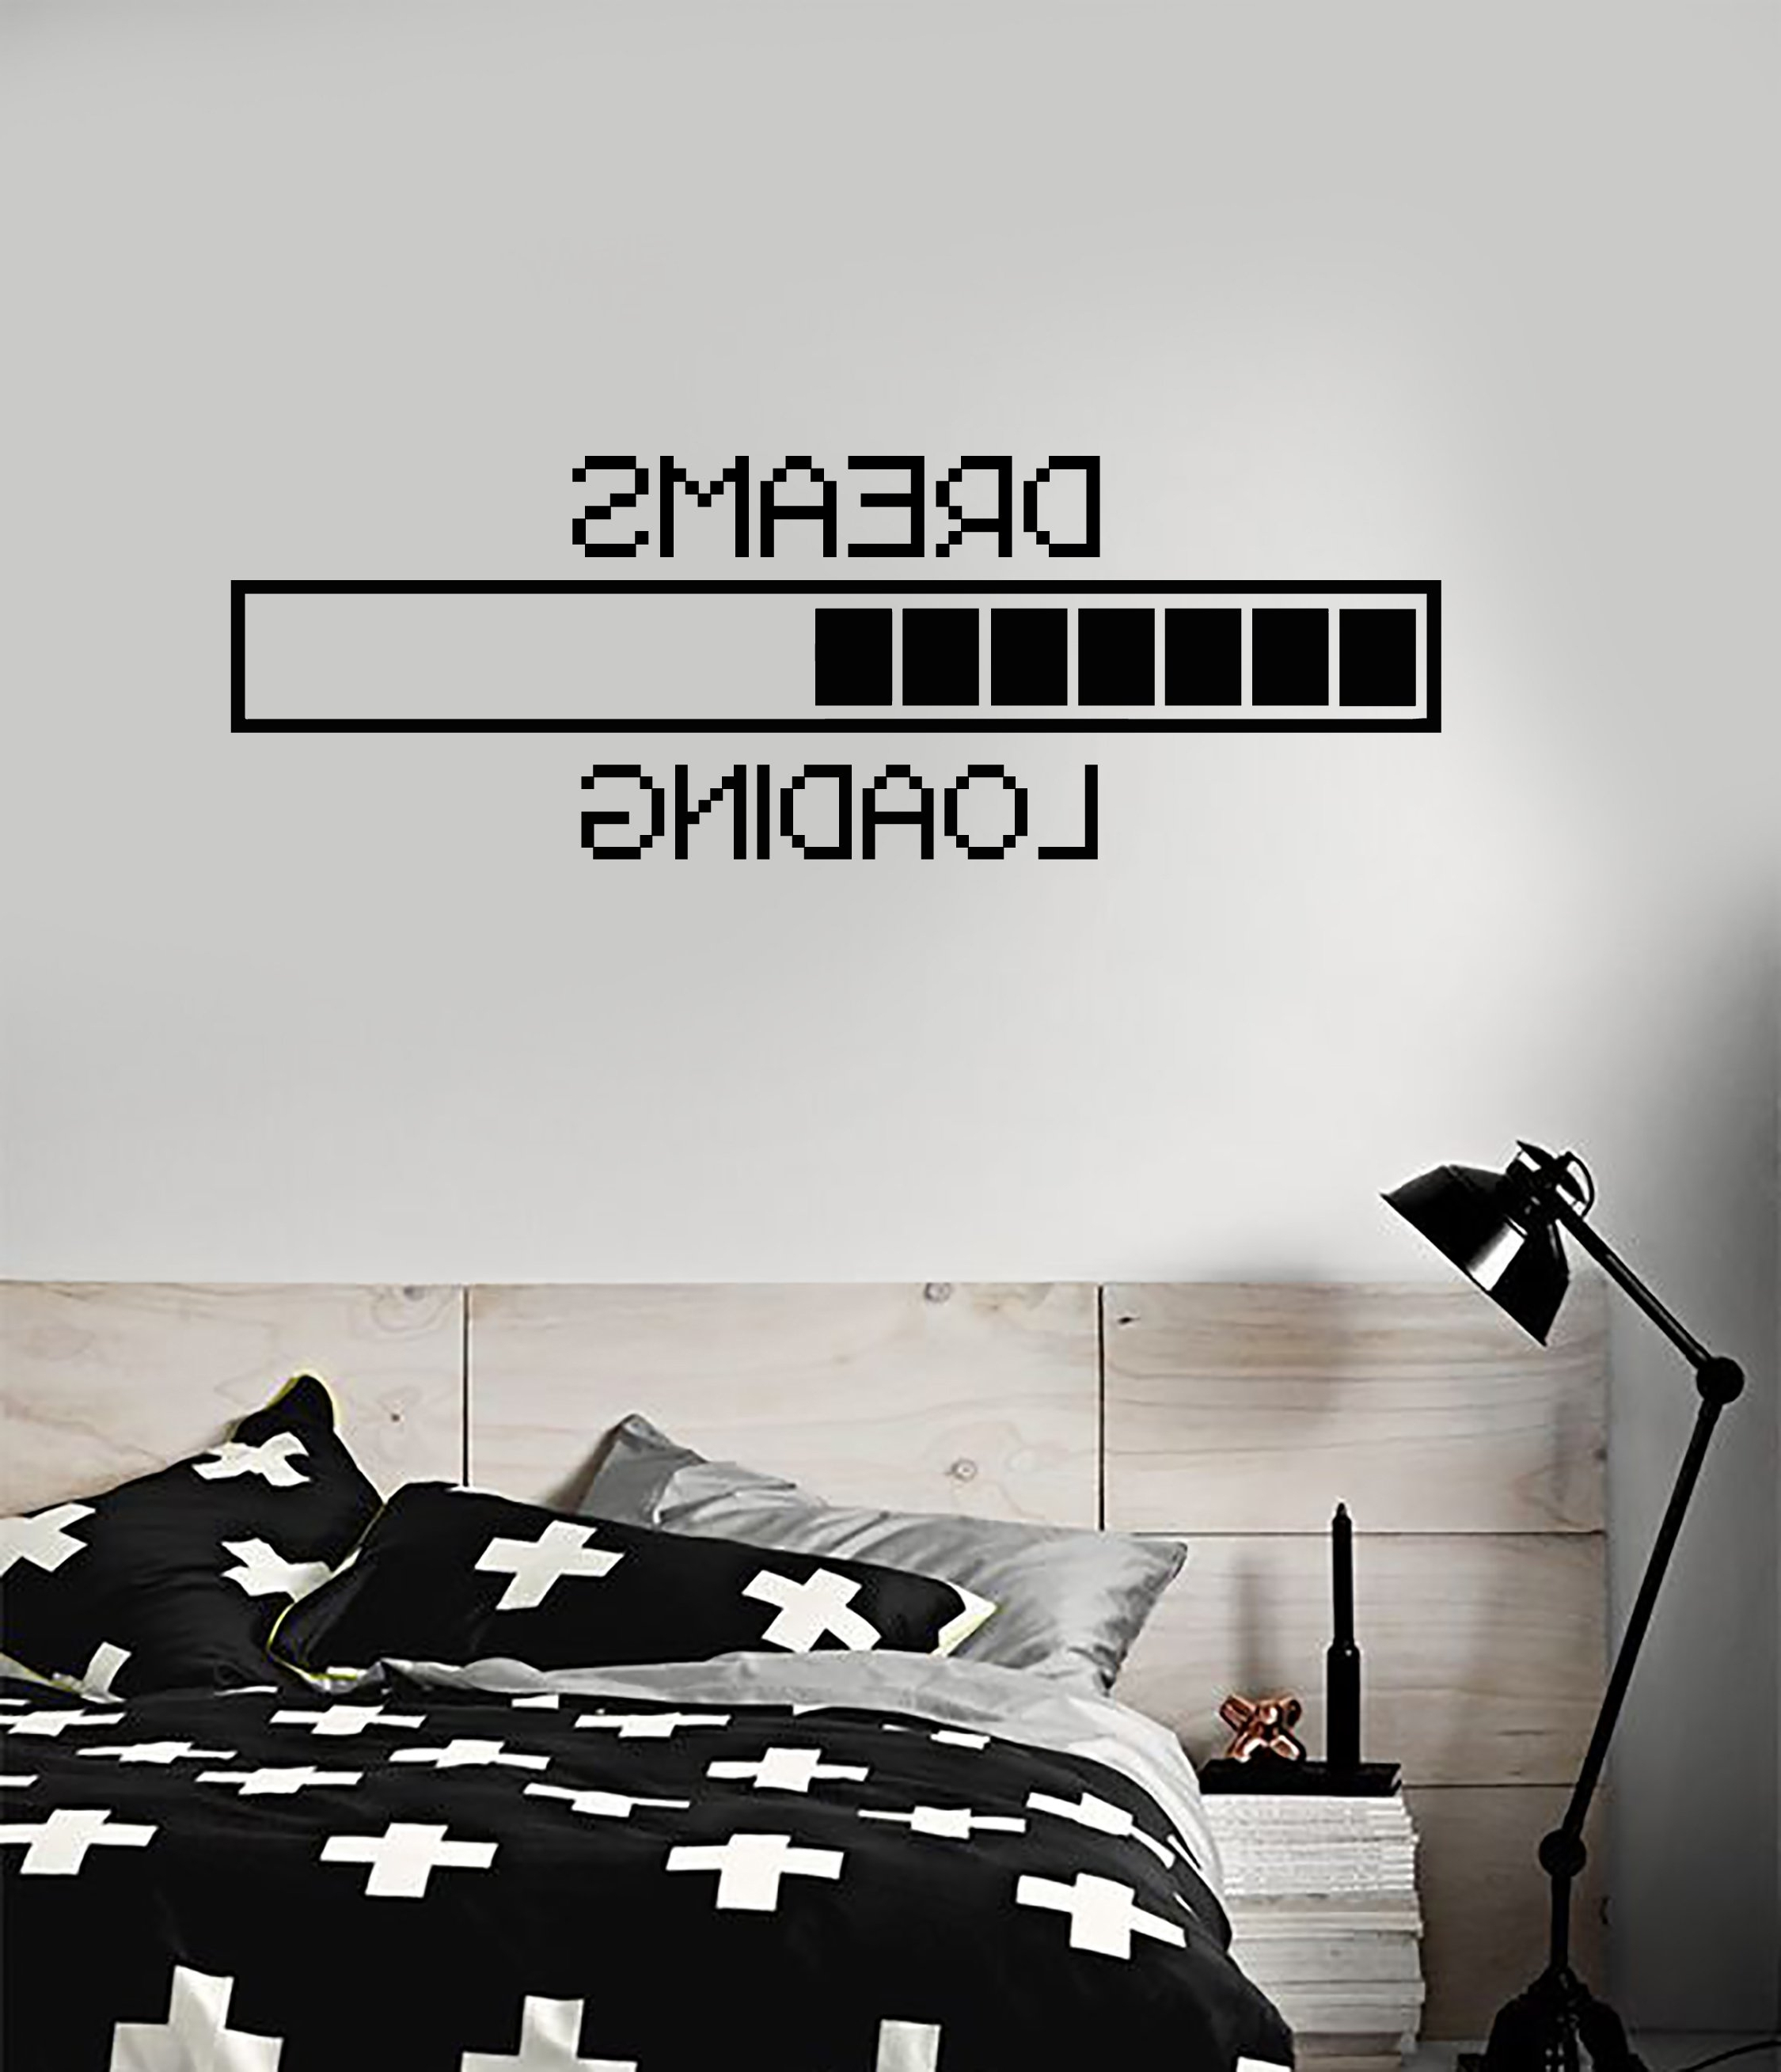 Newest Vinyl Wall Decal Dreams Geek Bedroom Loading Pixel Art Decor For Art Deco Wall Decals (View 12 of 15)